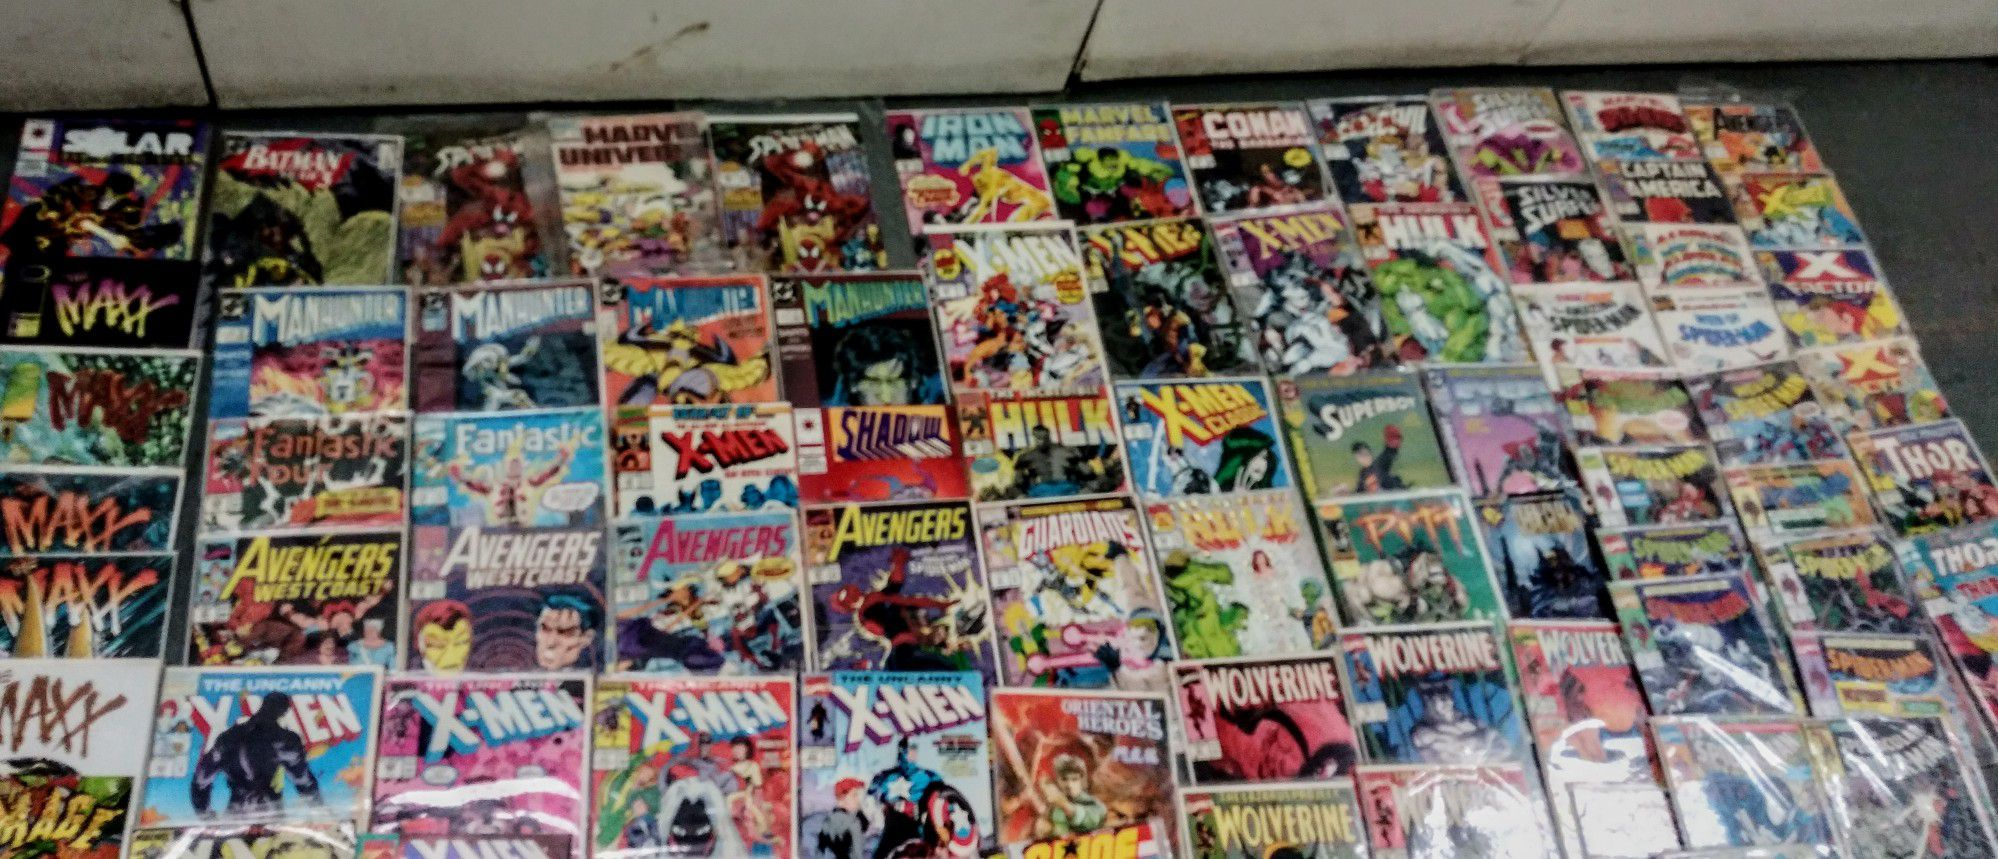 Lot of comics most are in NM condition in plastic sleeves